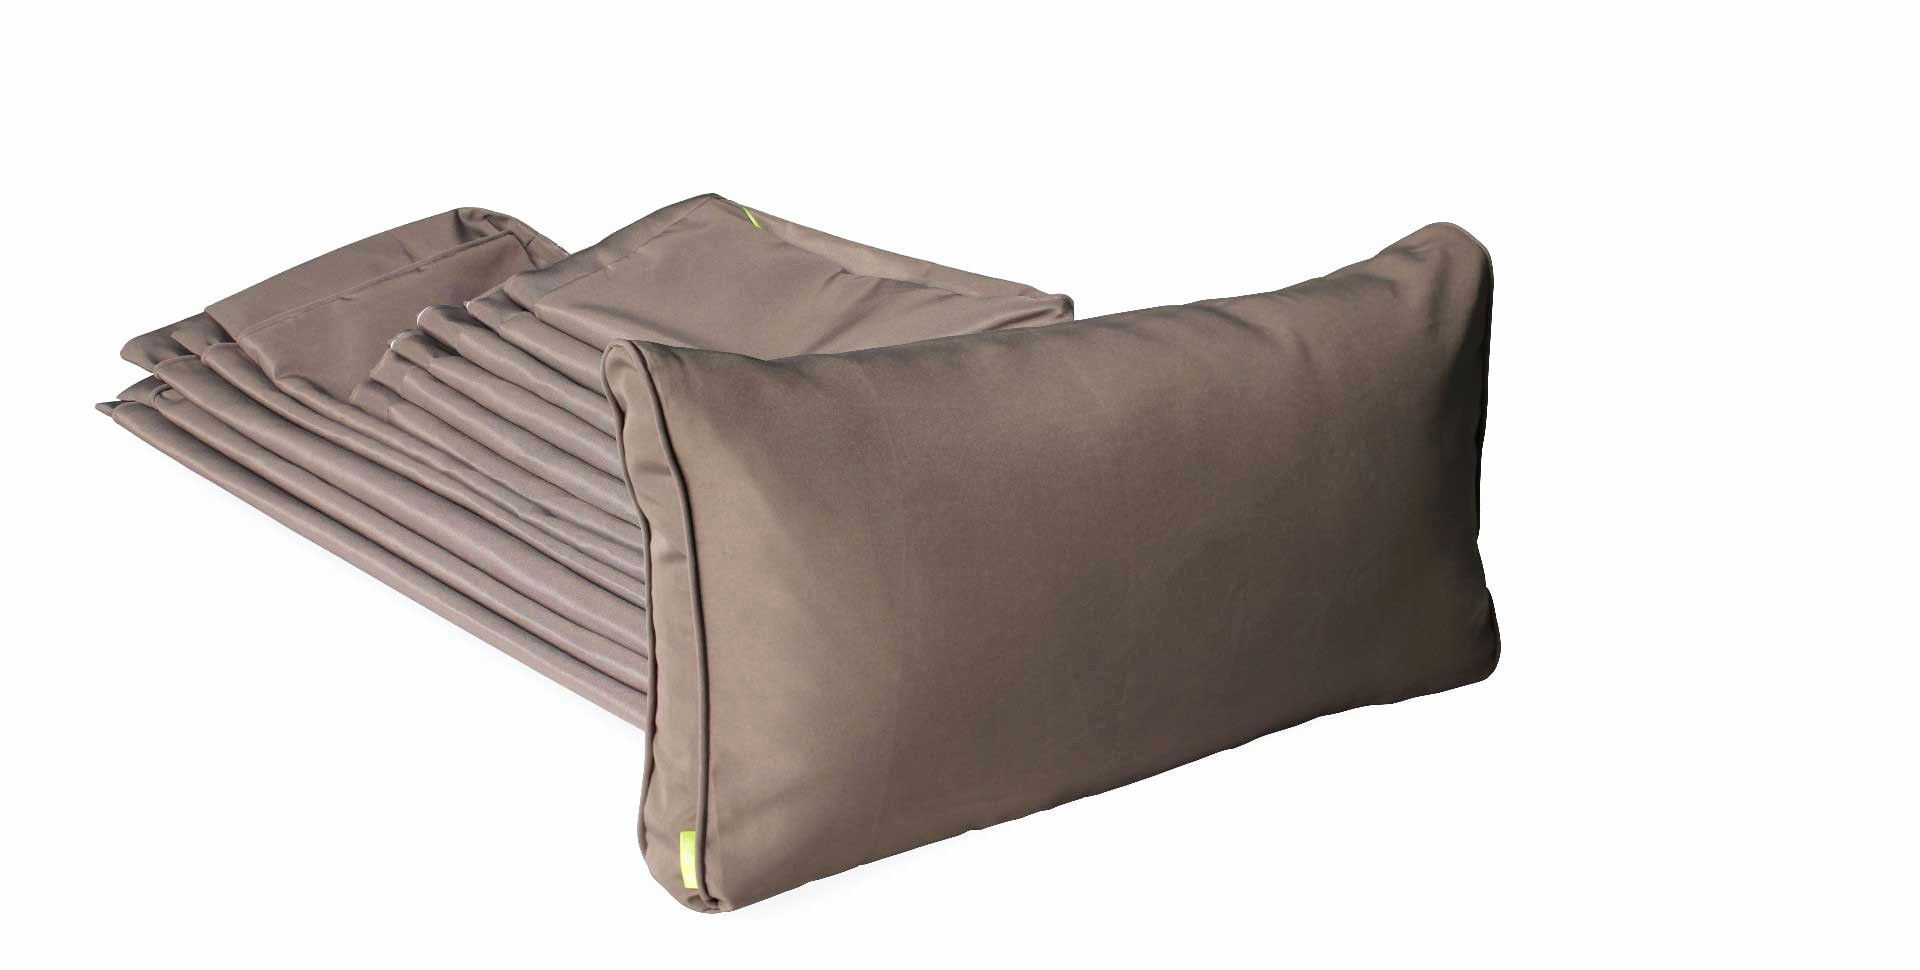 Coussin Nuque Gifi Nouveau Stock 47 Inspirant Collection De Gifi Bache De Protection